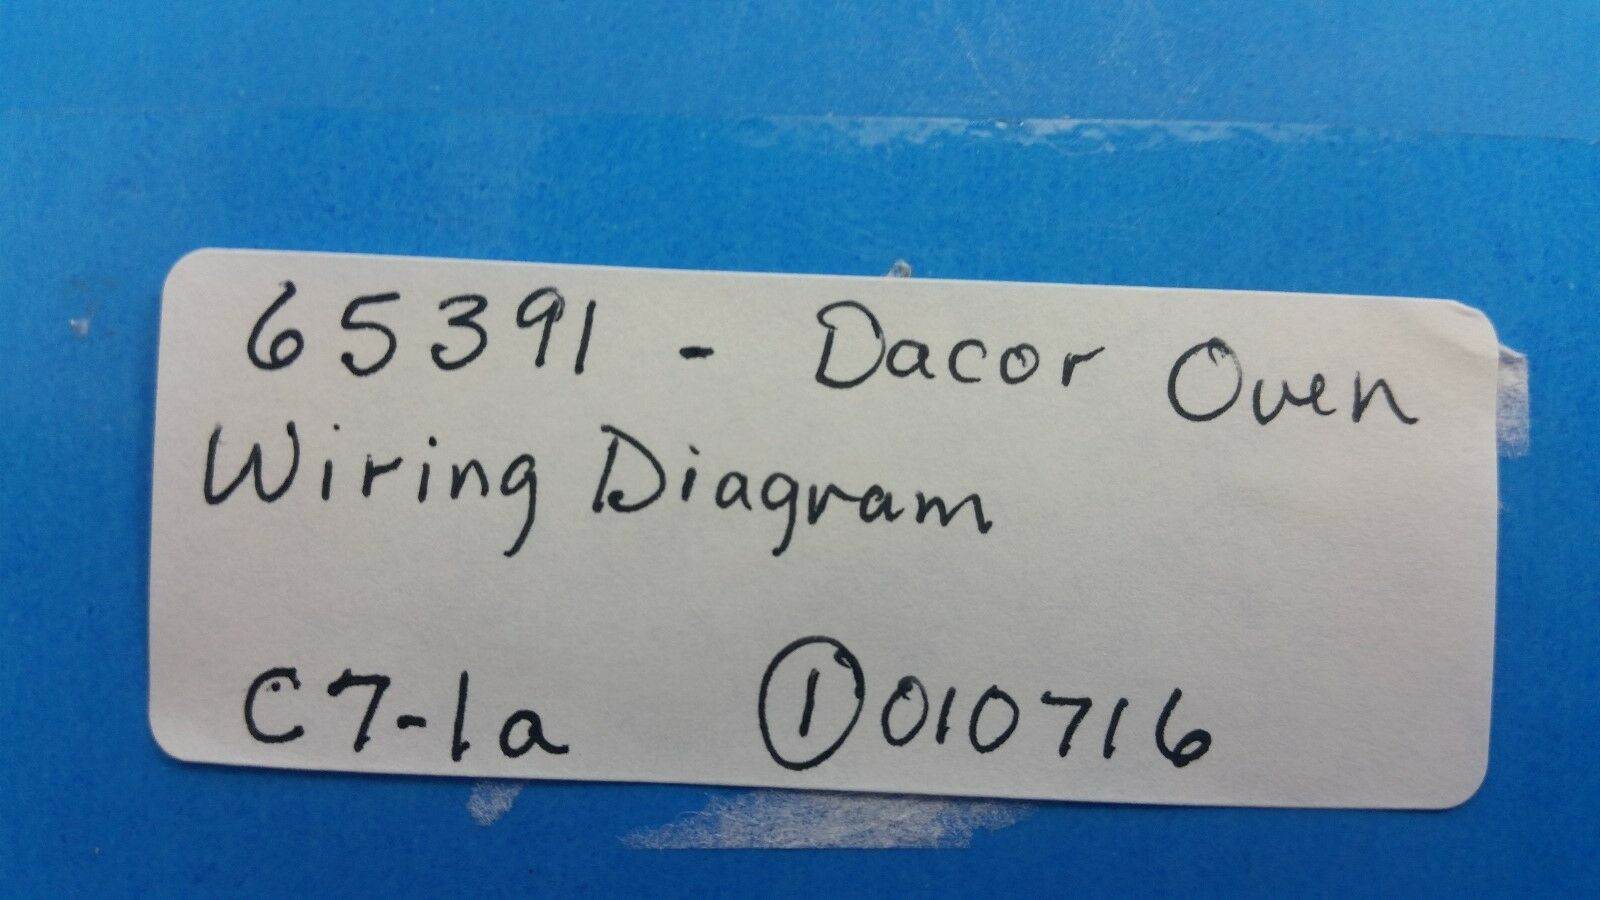 wiring diagram for dacor oven yamaha wiring diagram wiring